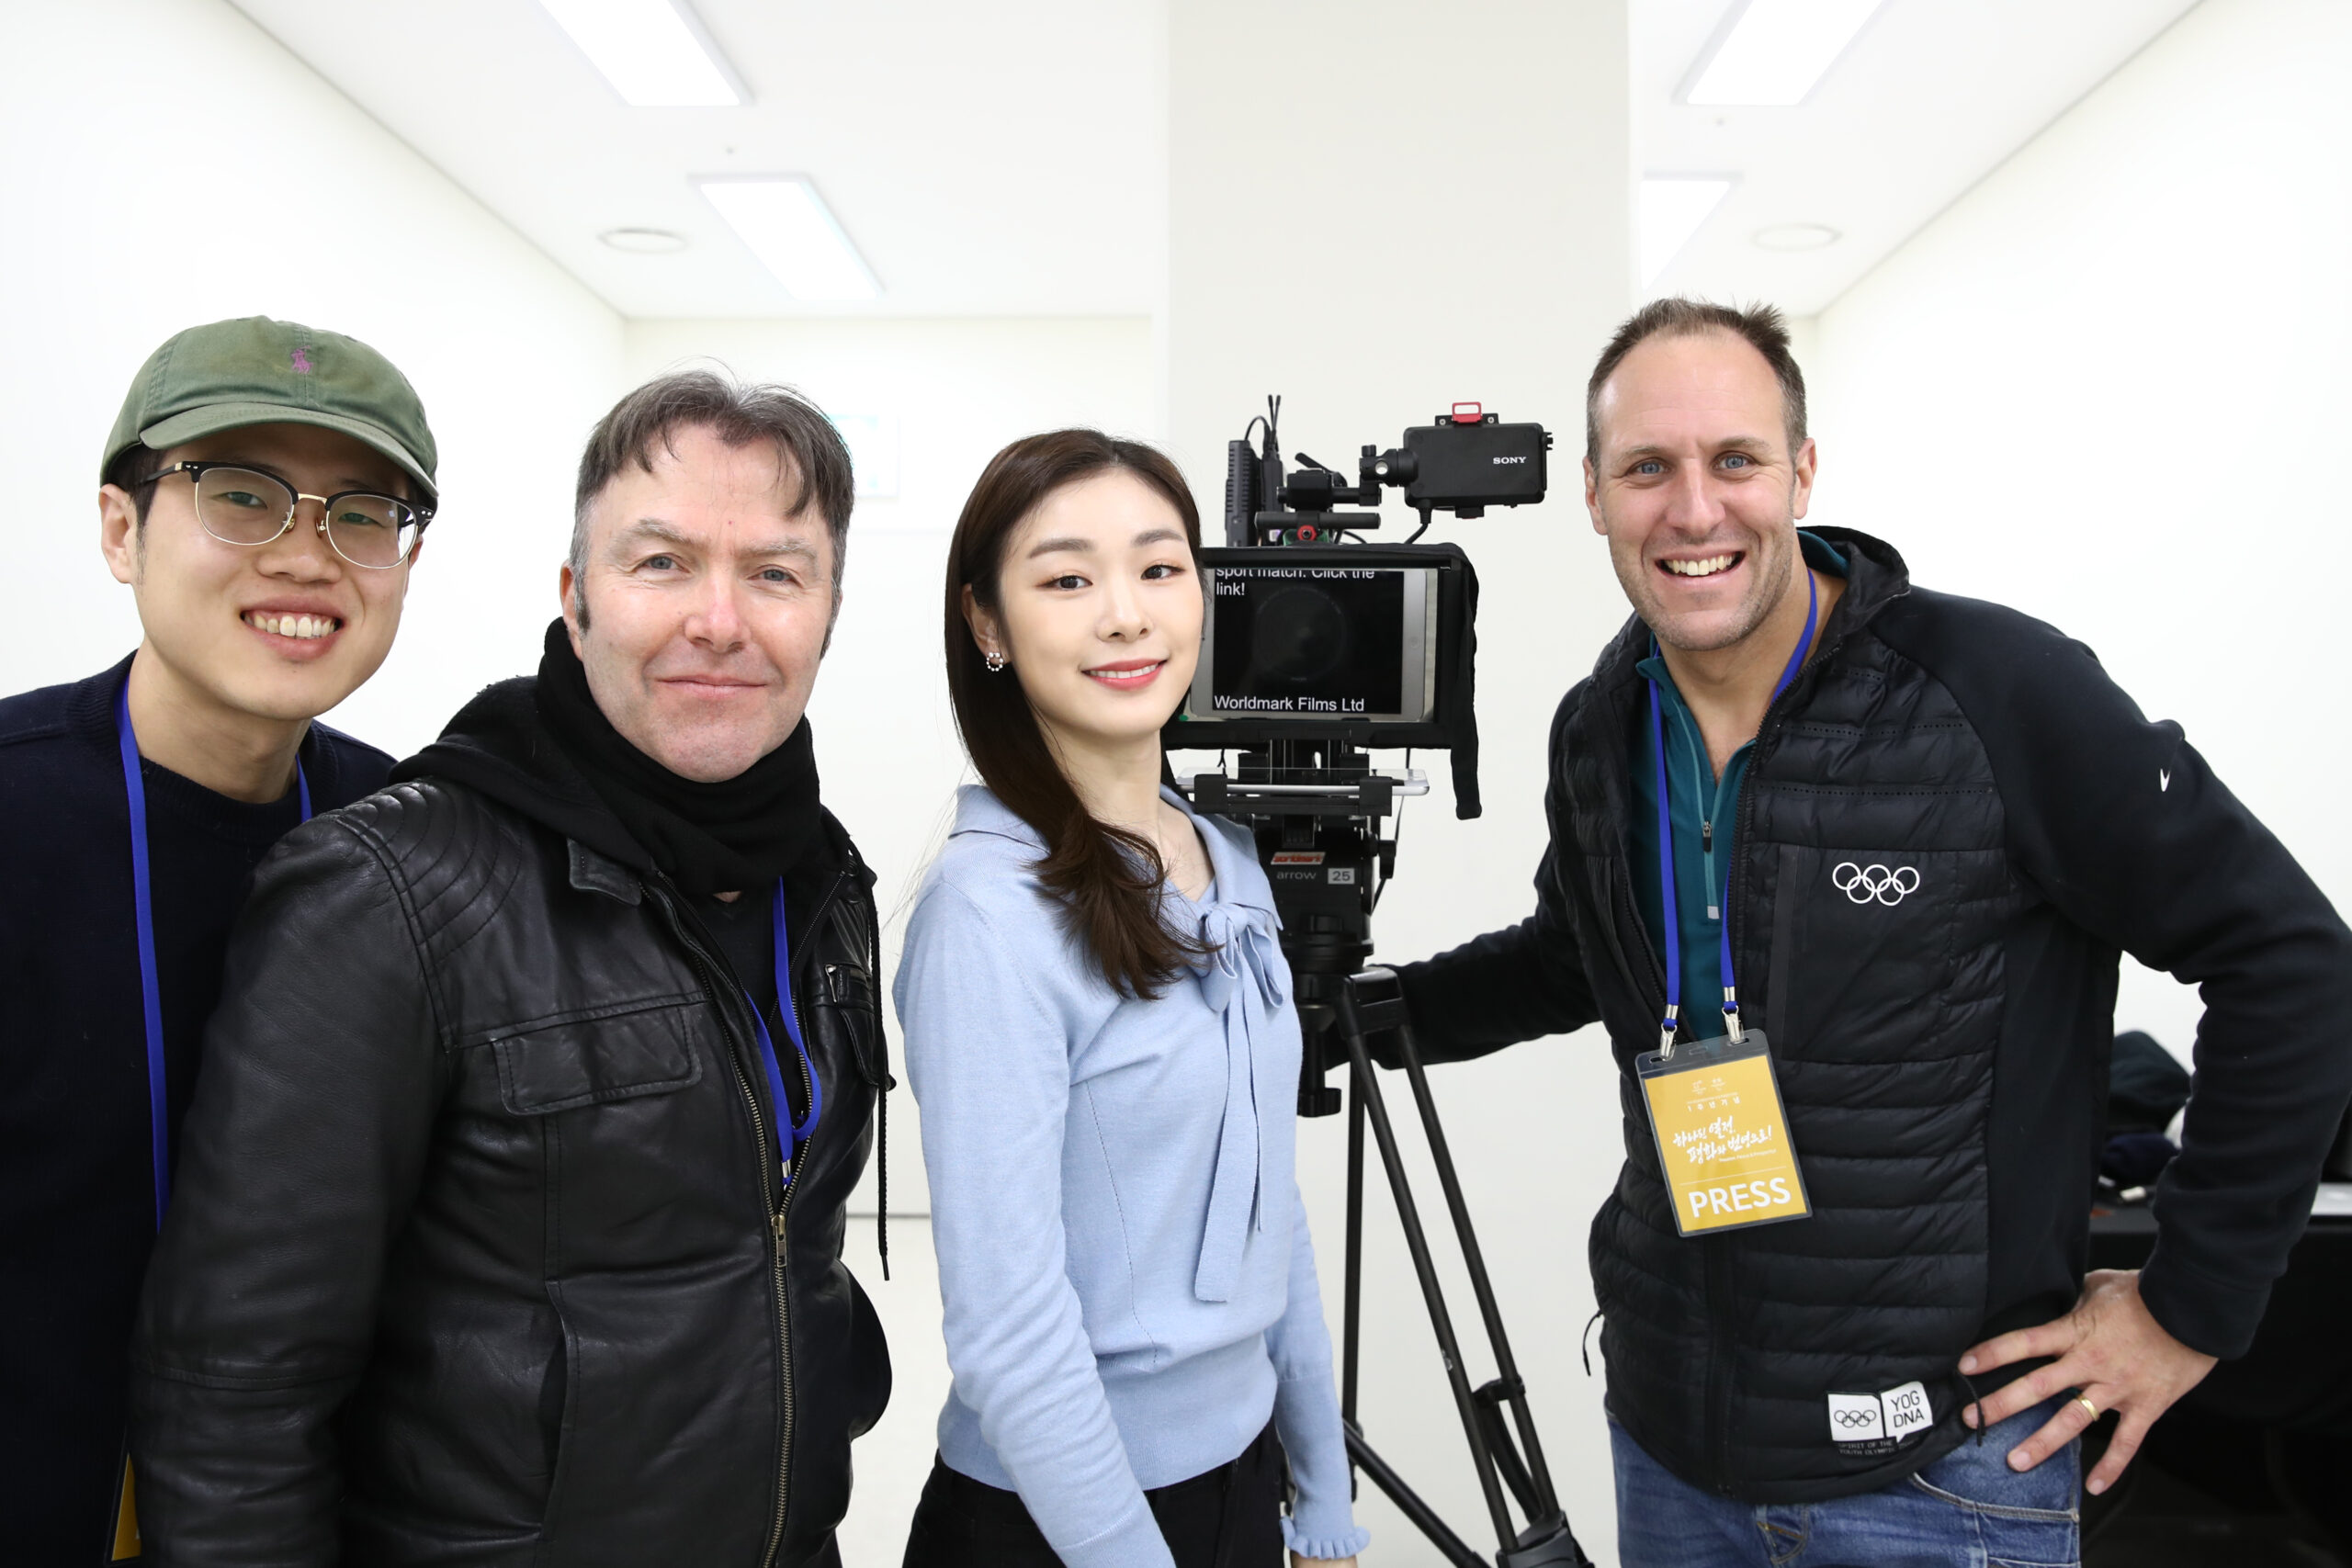 Pyeongchang 2018 – Back in 2019